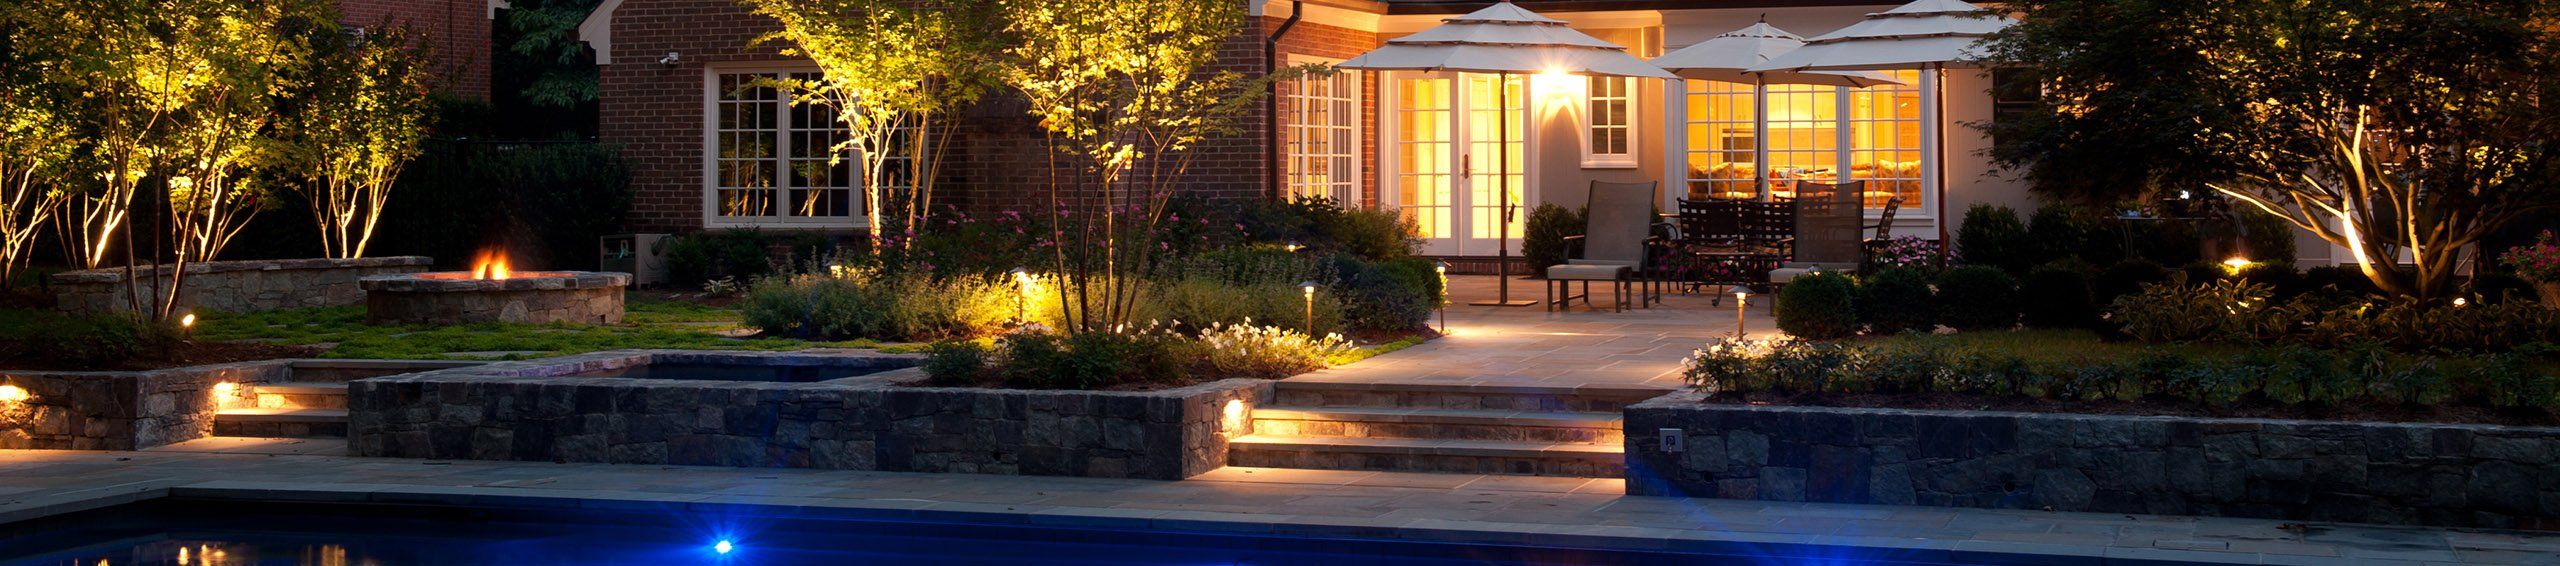 lighting install services howard county